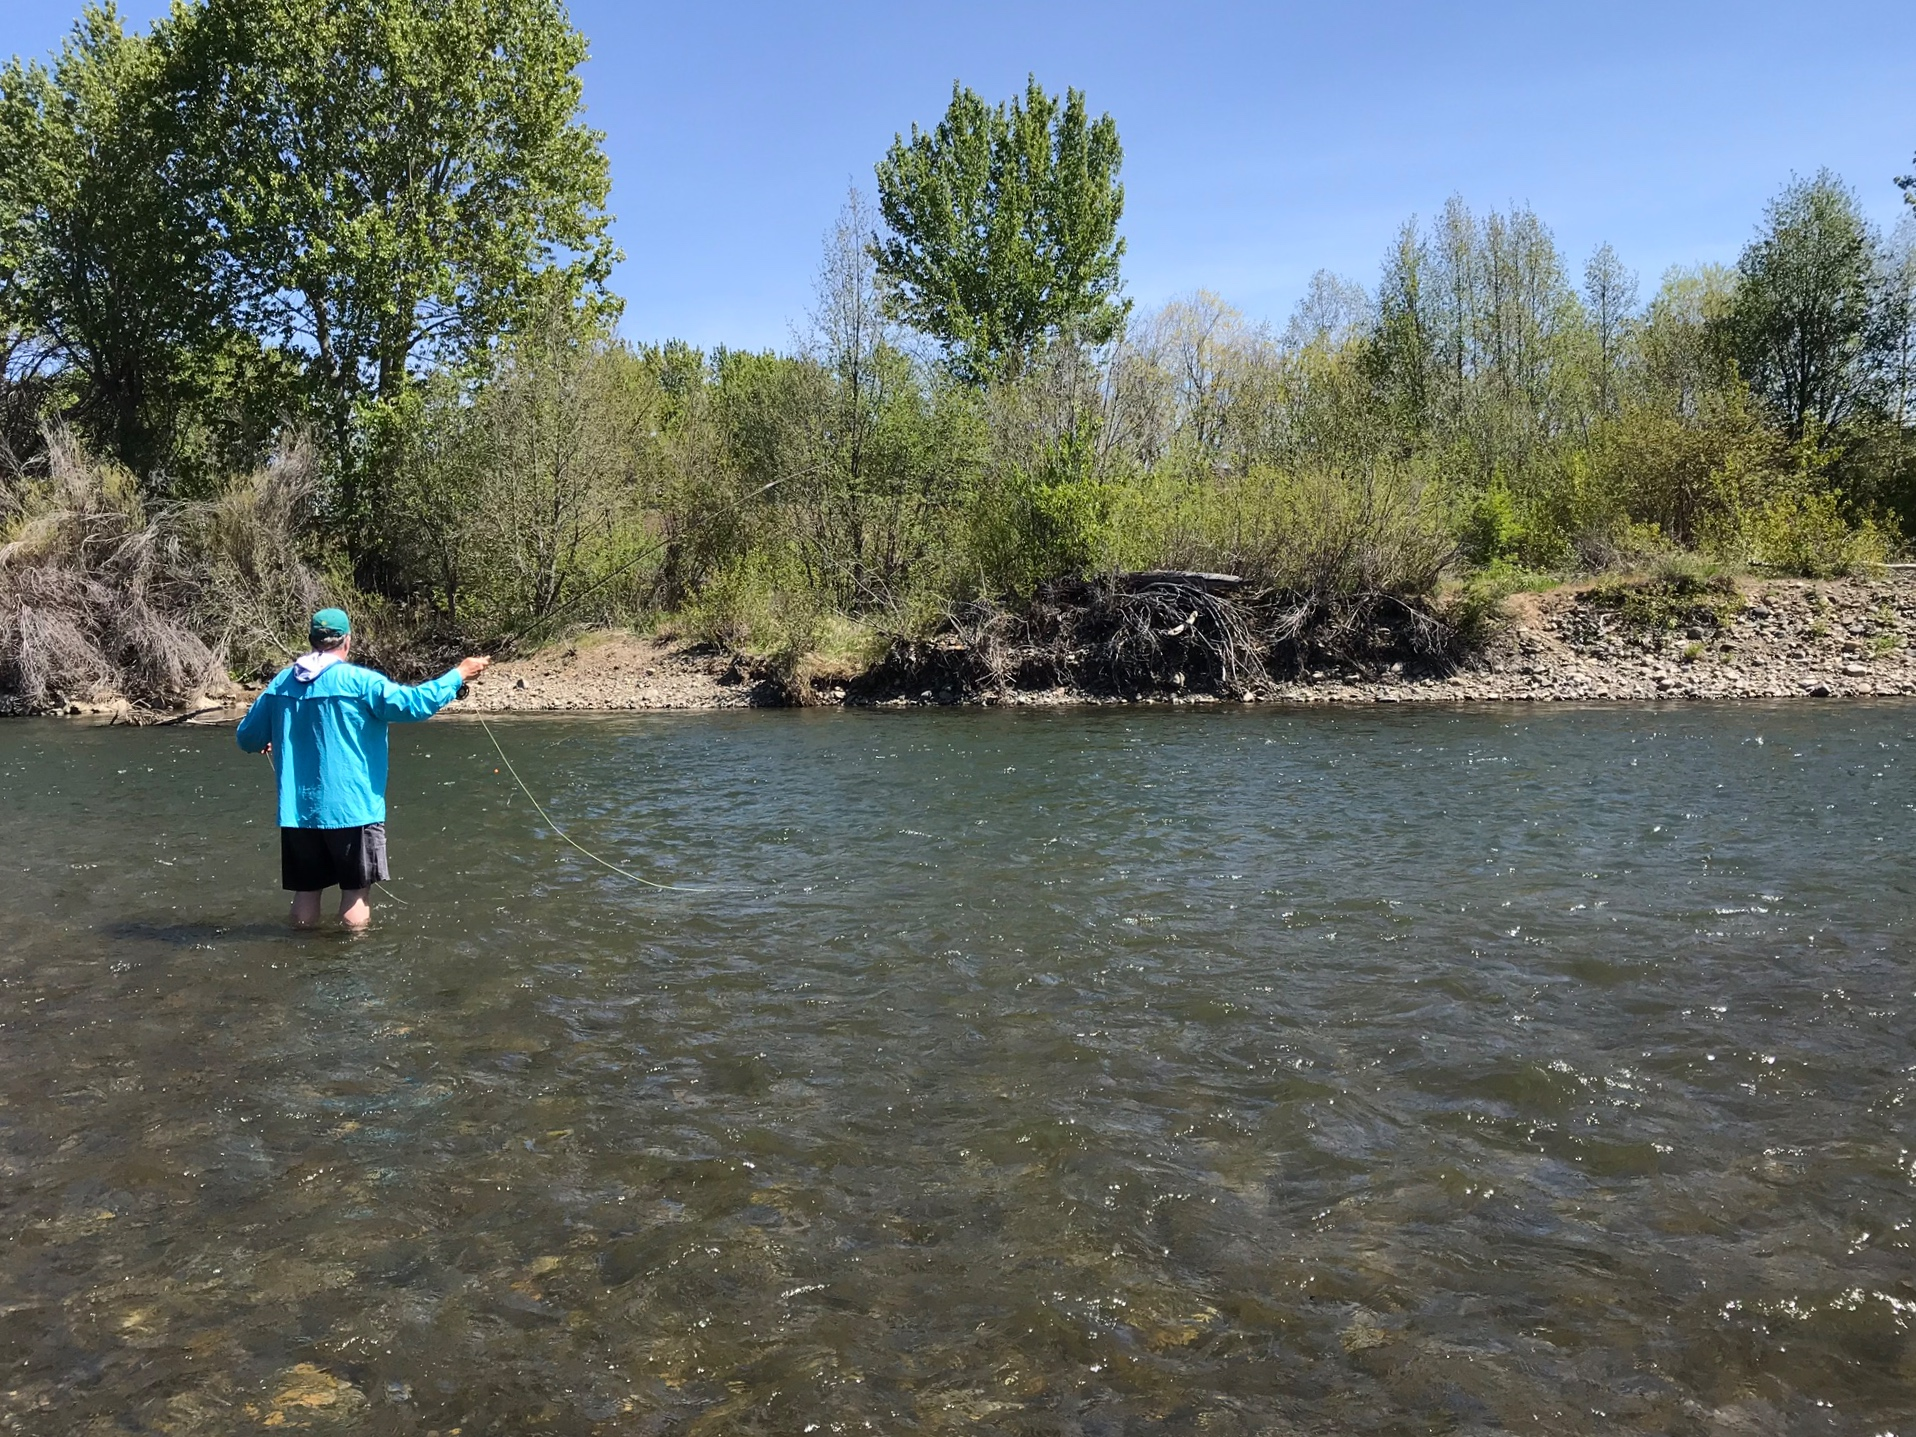 Fly fishing the Yakima River